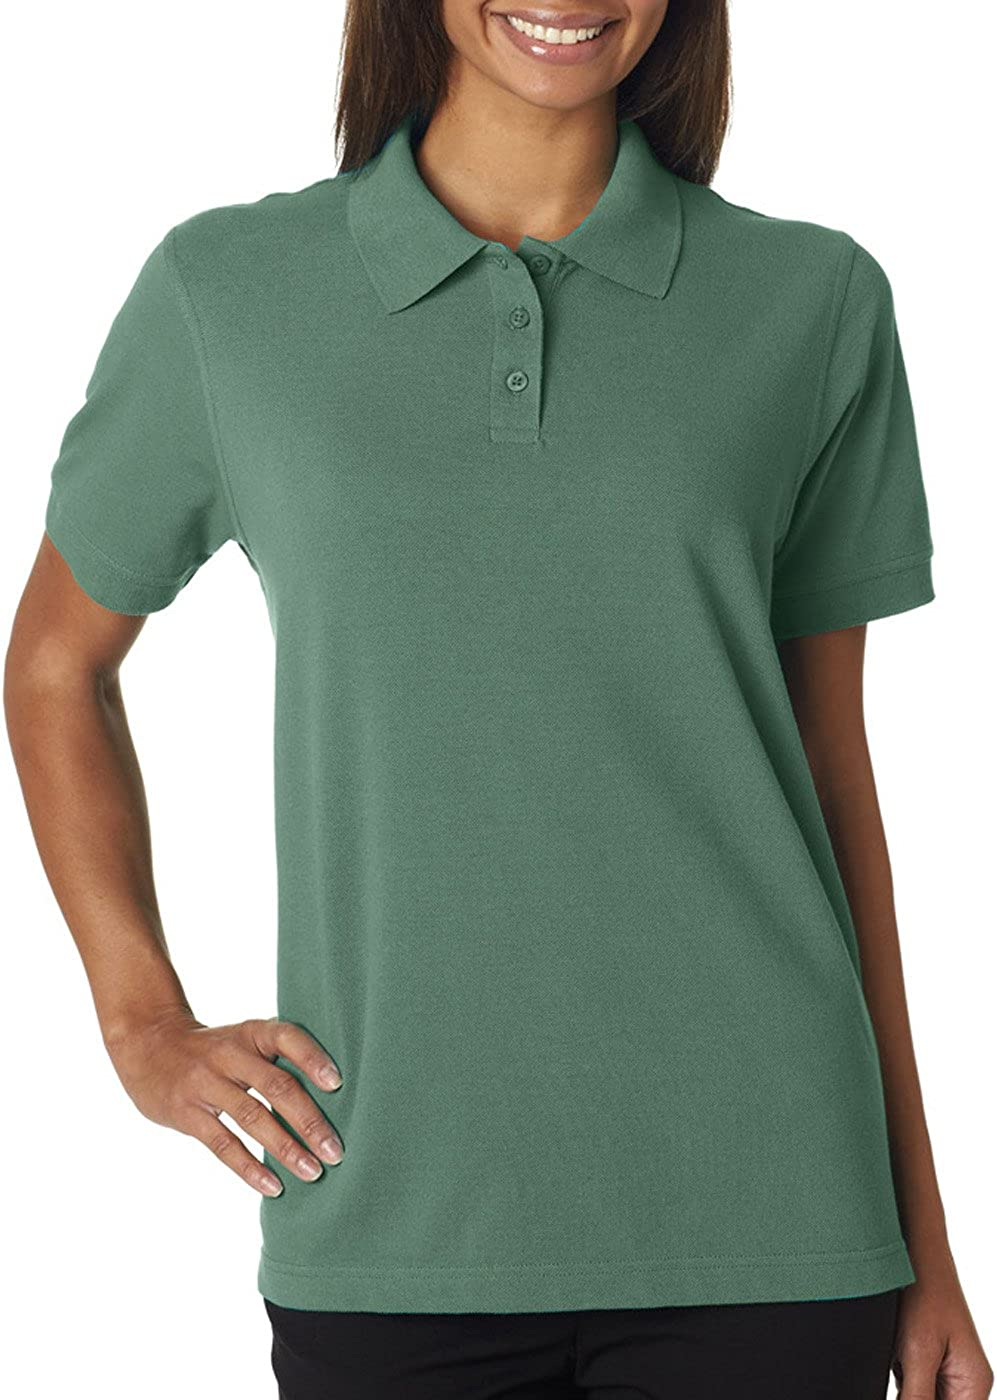 UltraClubs Womens Classic Pique Polo